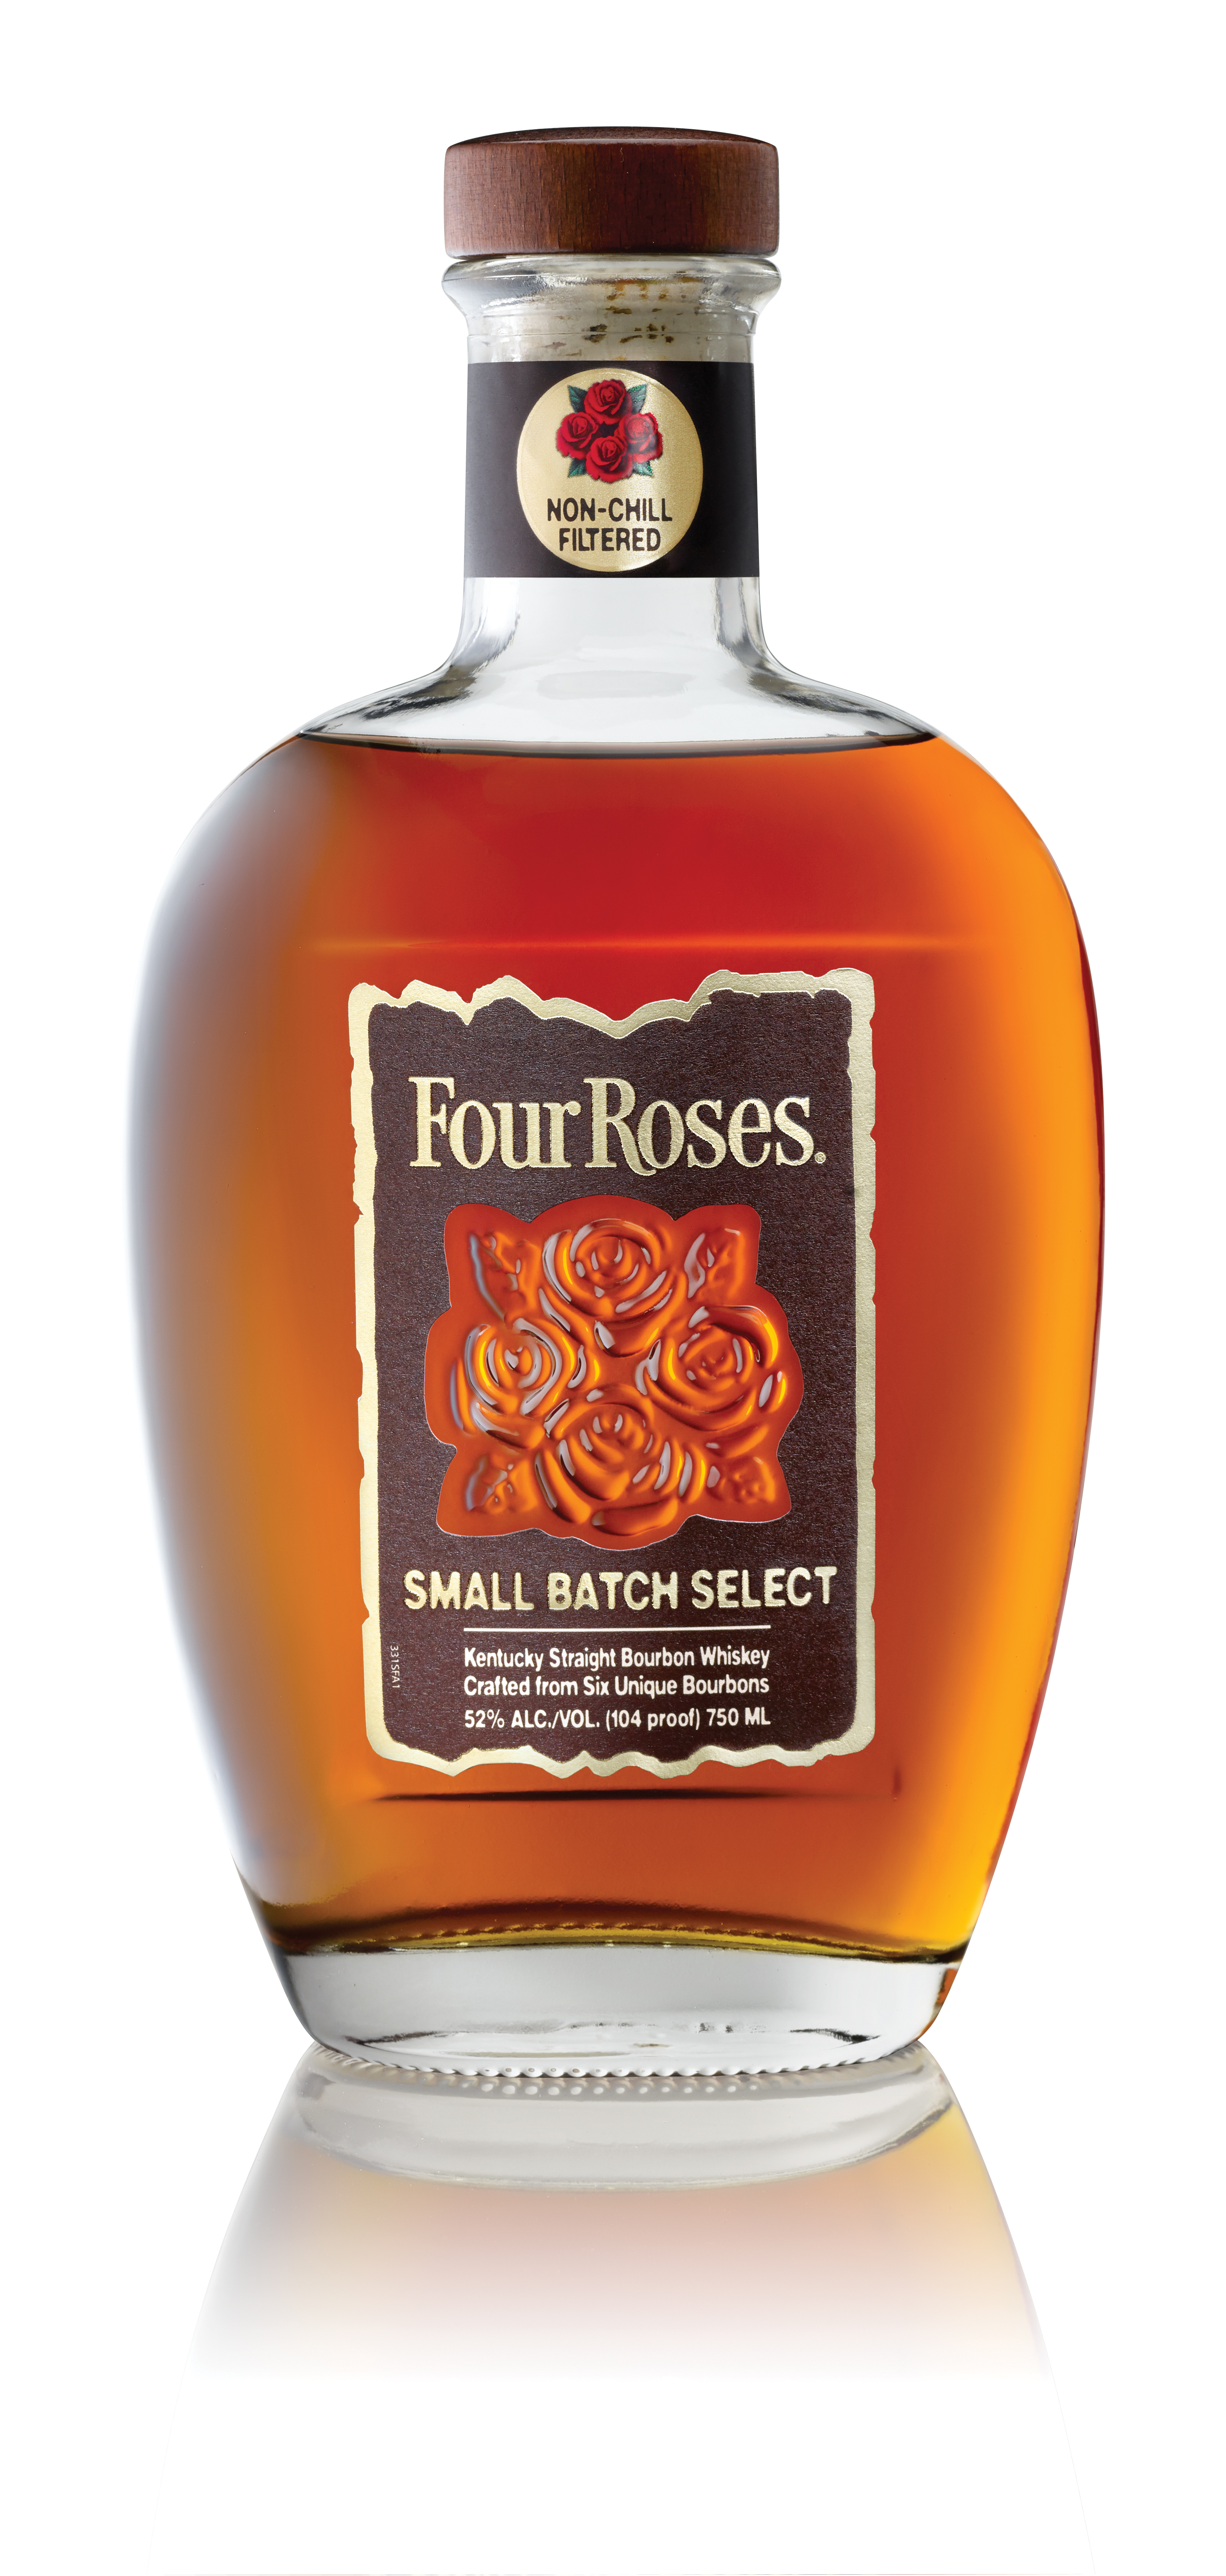 Four Roses Small Batch Select. Photo Courtesy Four Roses.